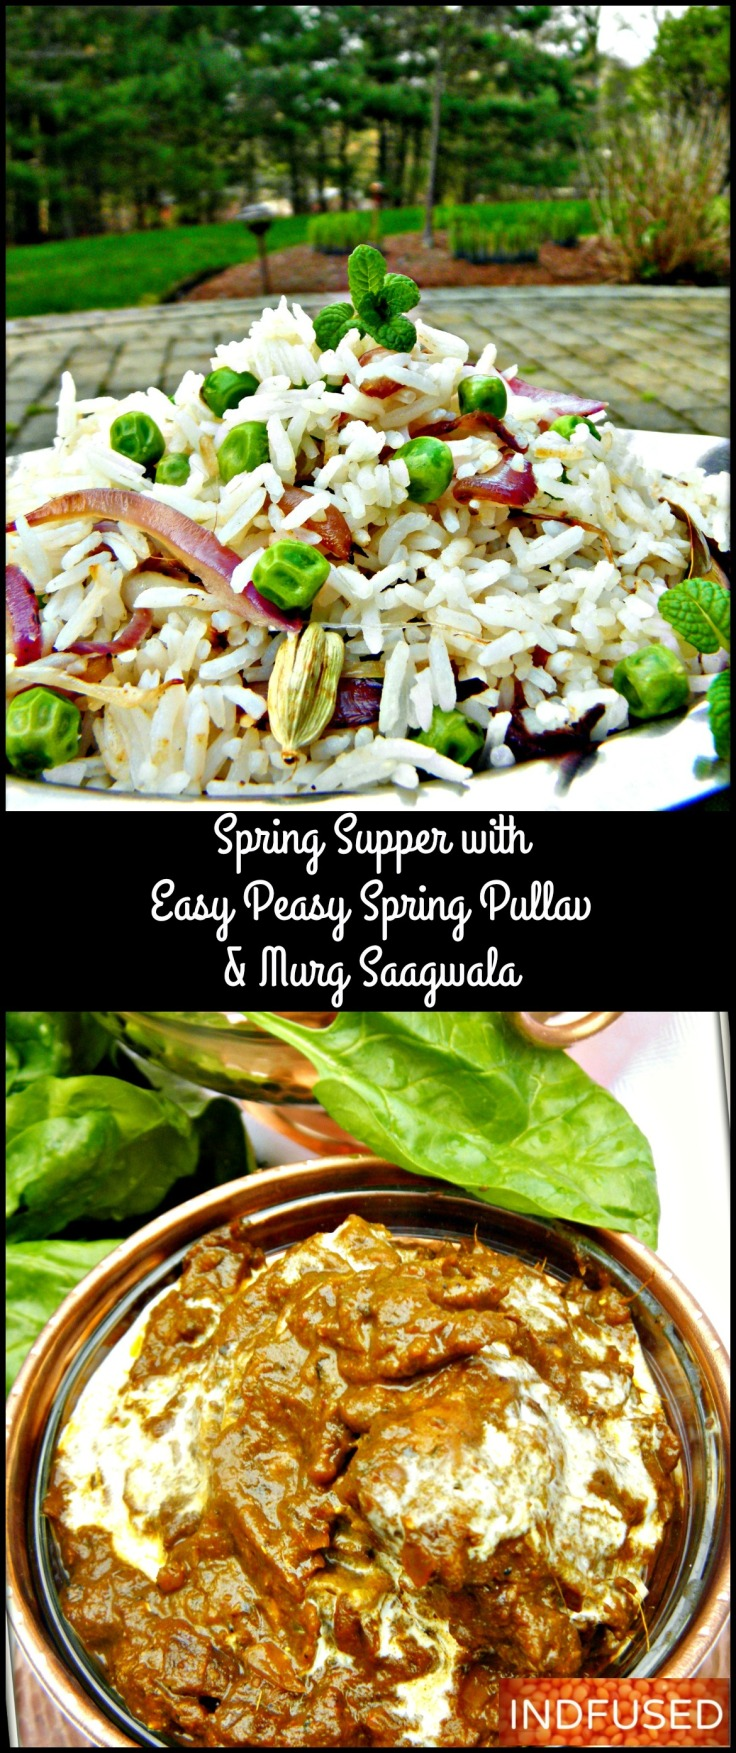 Easy Peasy Spring Pullav with Murg Saagwala